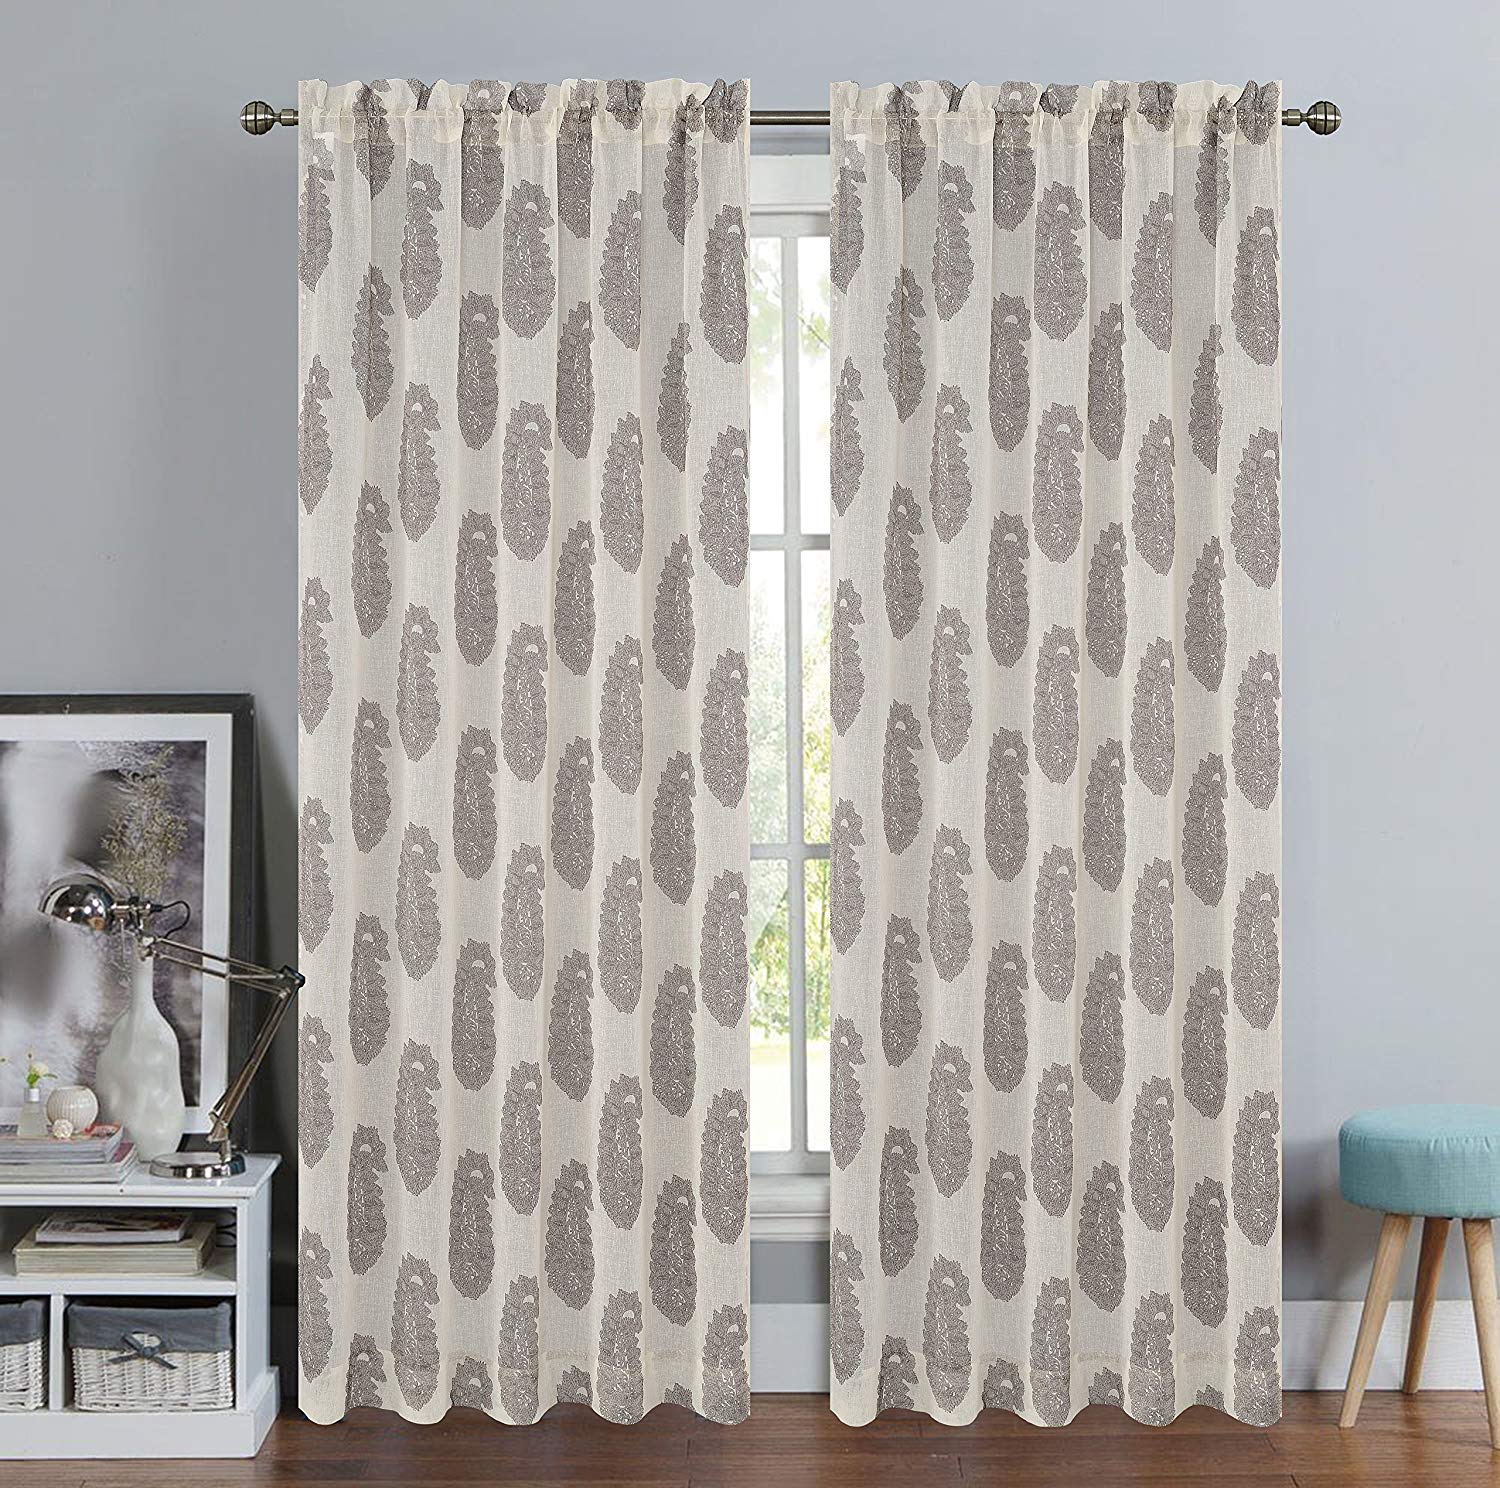 Urbanest Paisley Set of 2 Faux Linen Sheer Curtain Panels